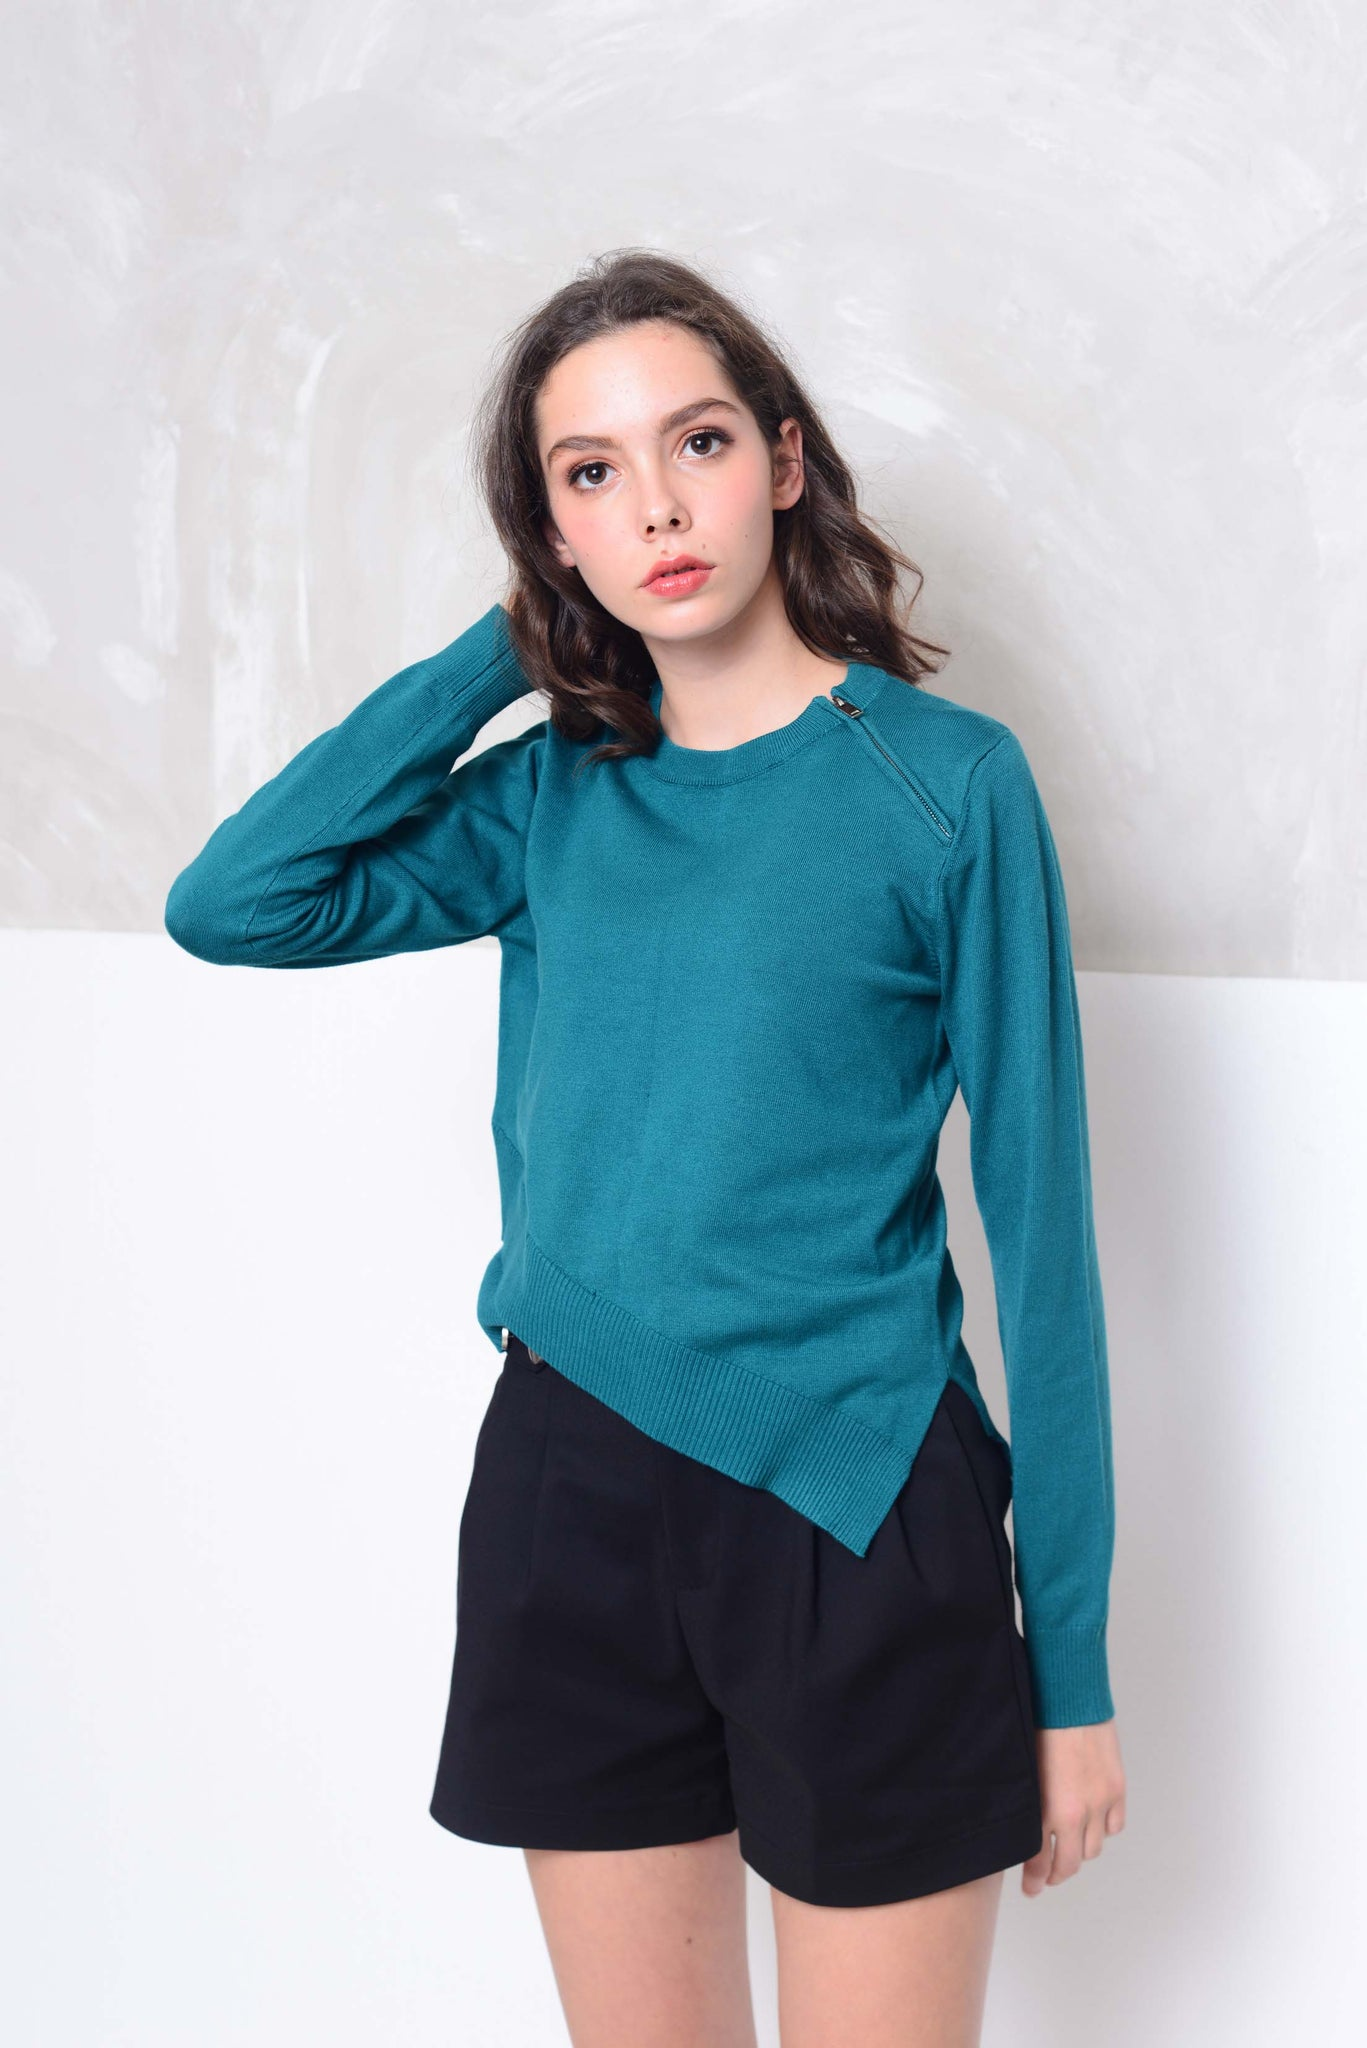 [FREE]Knit- Round neck cross layer knit top in green